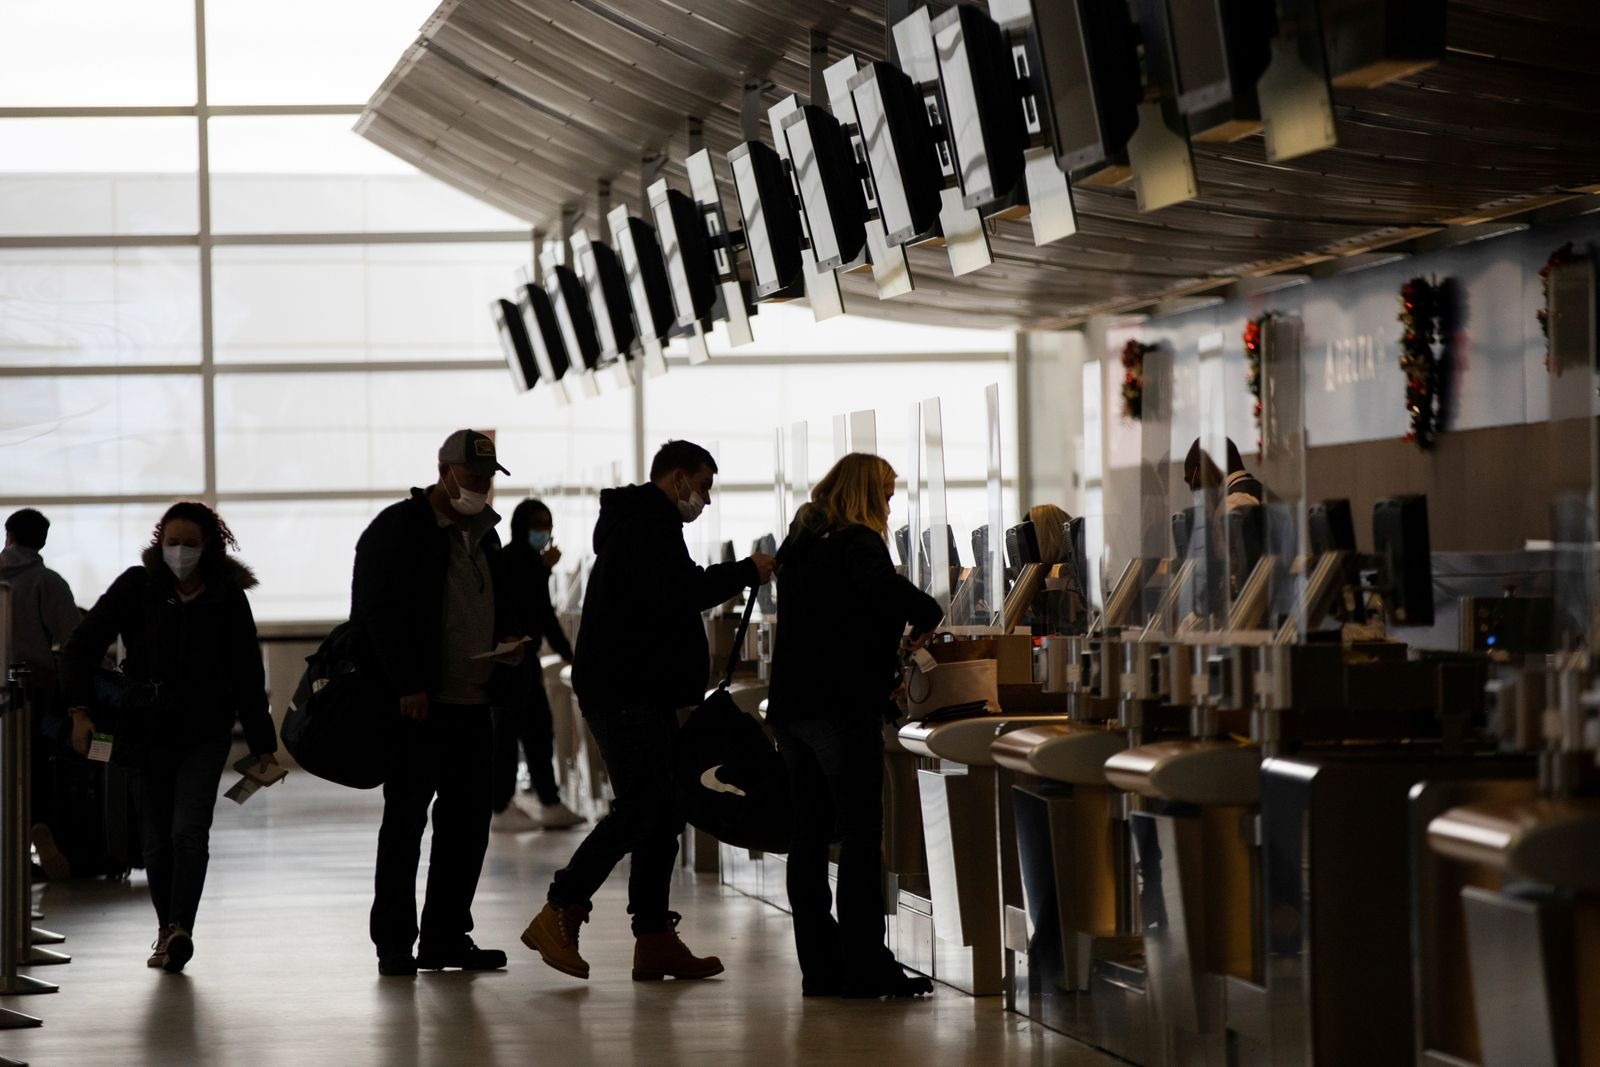 FILE PHOTO: People travel during the holiday season at Detroit Metropolitan Wayne County Airport